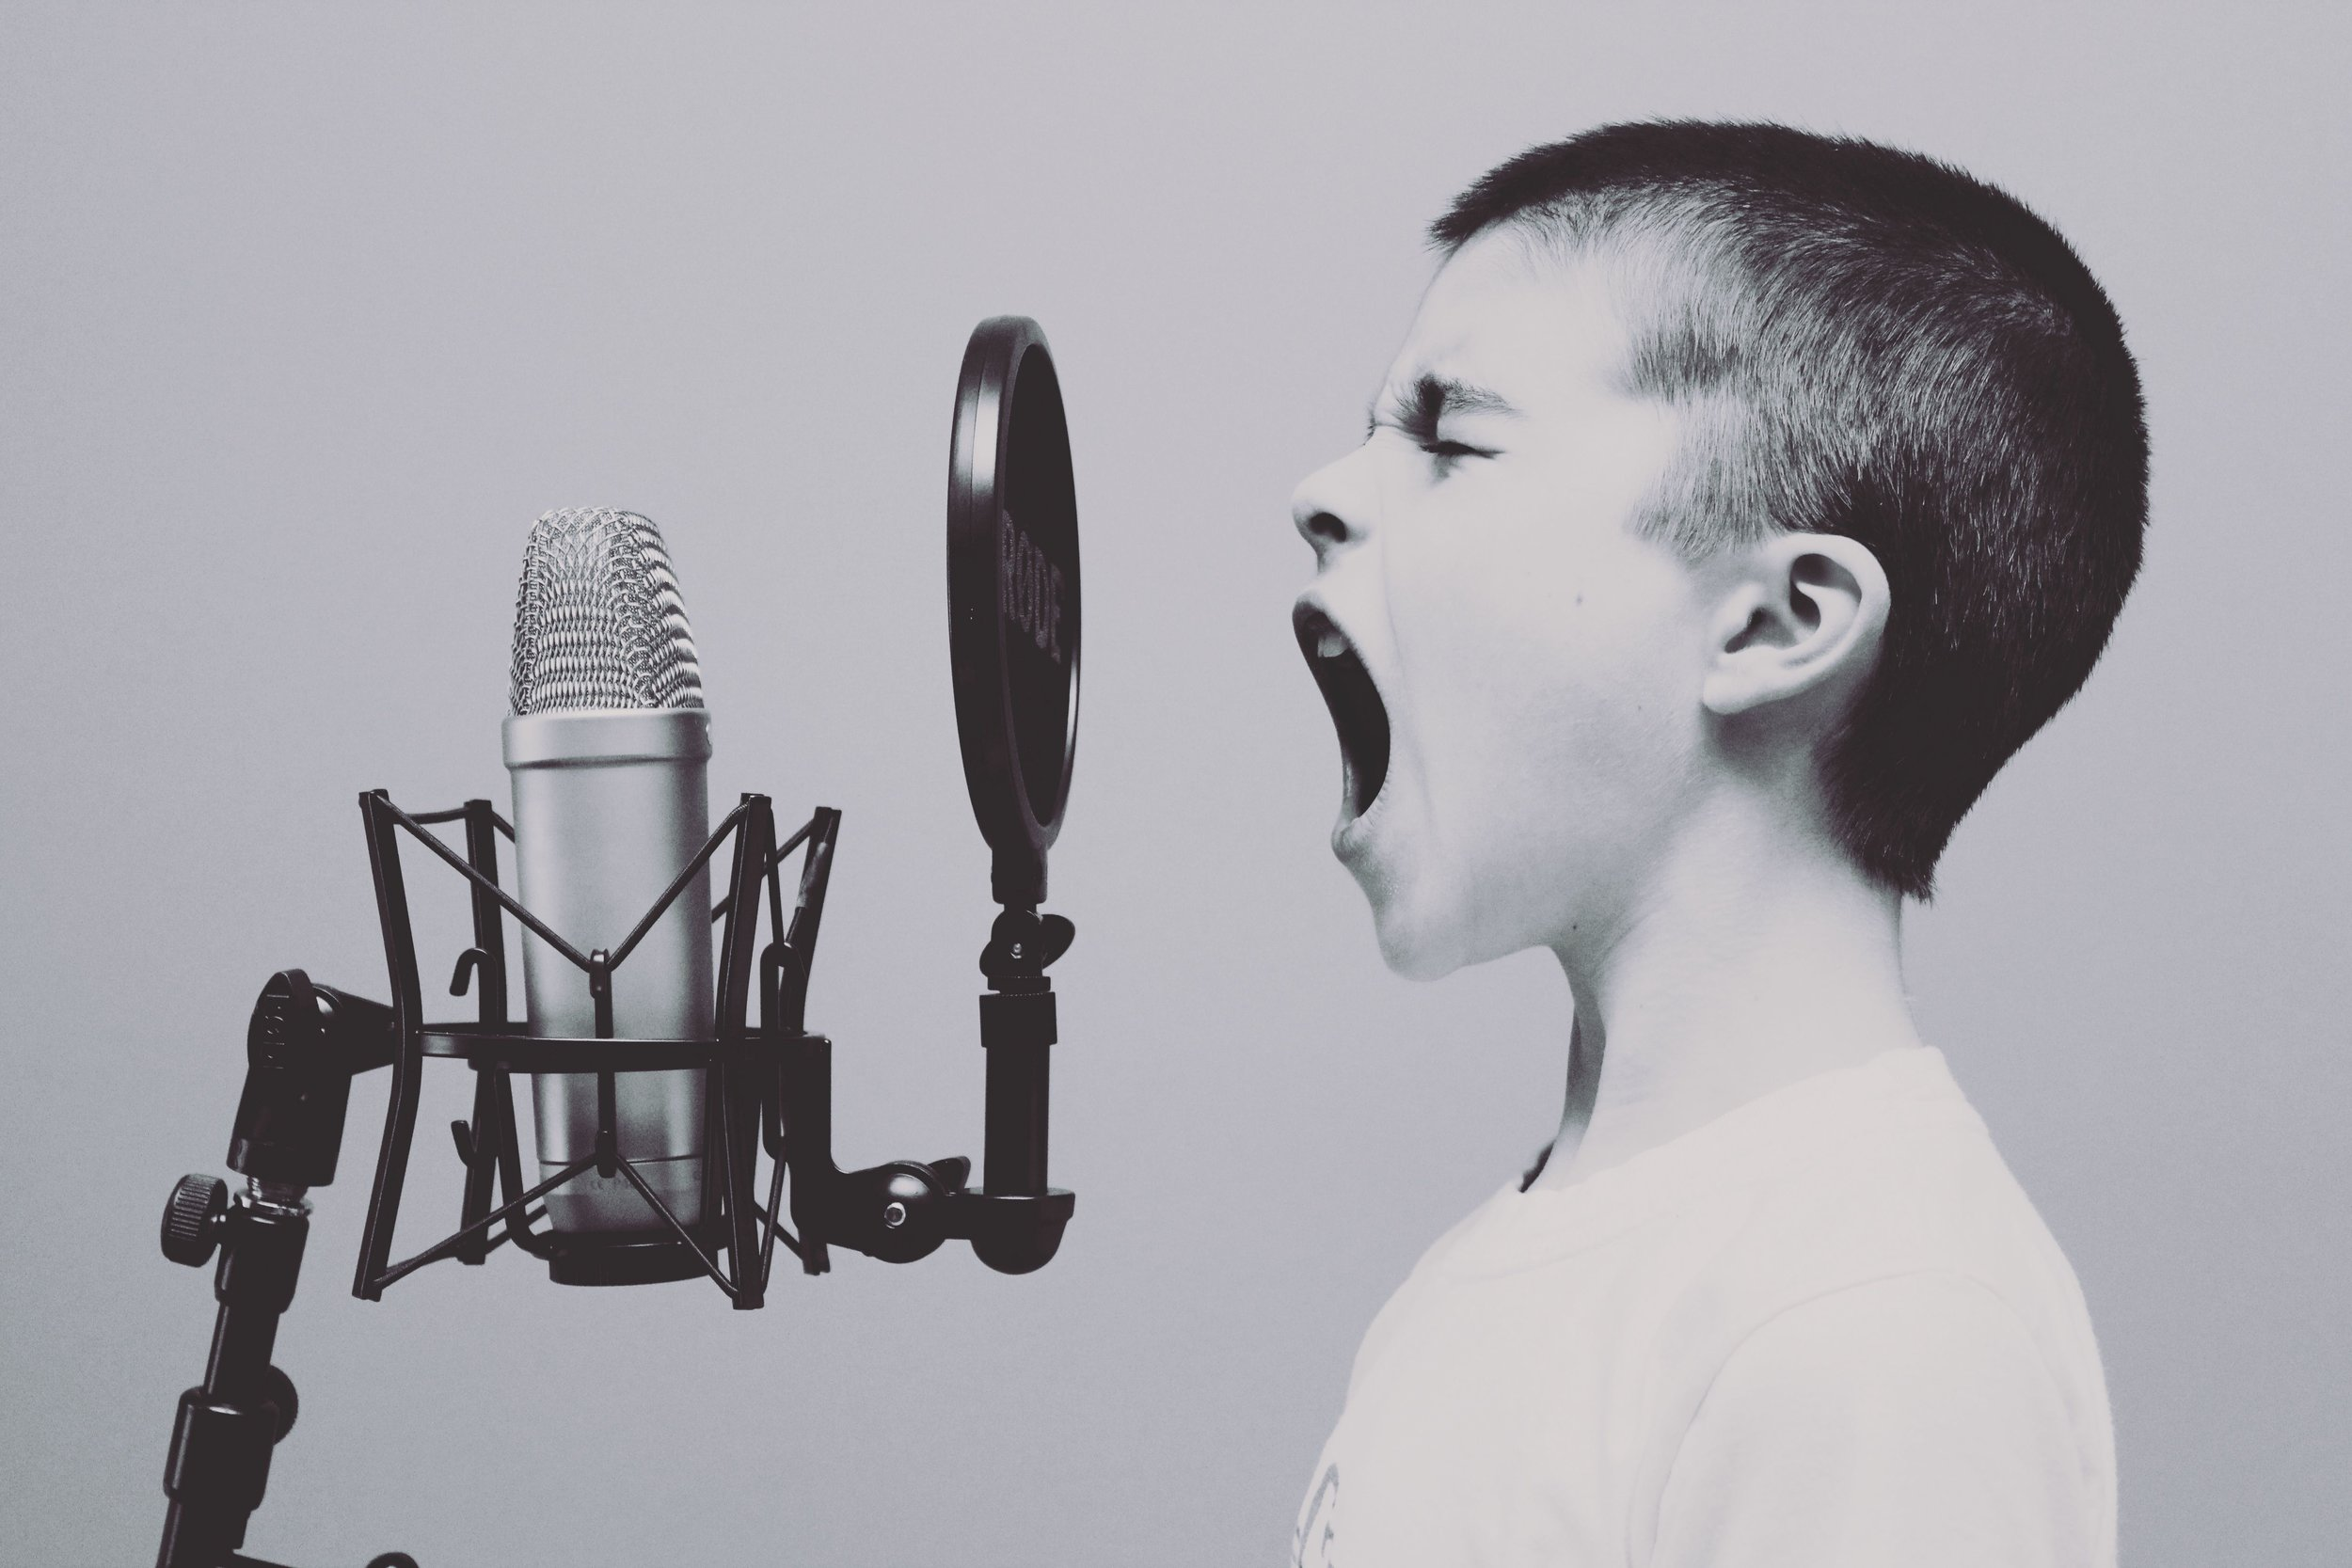 negative-space-microphone-boy-studio-screaming-free-photos.jpg